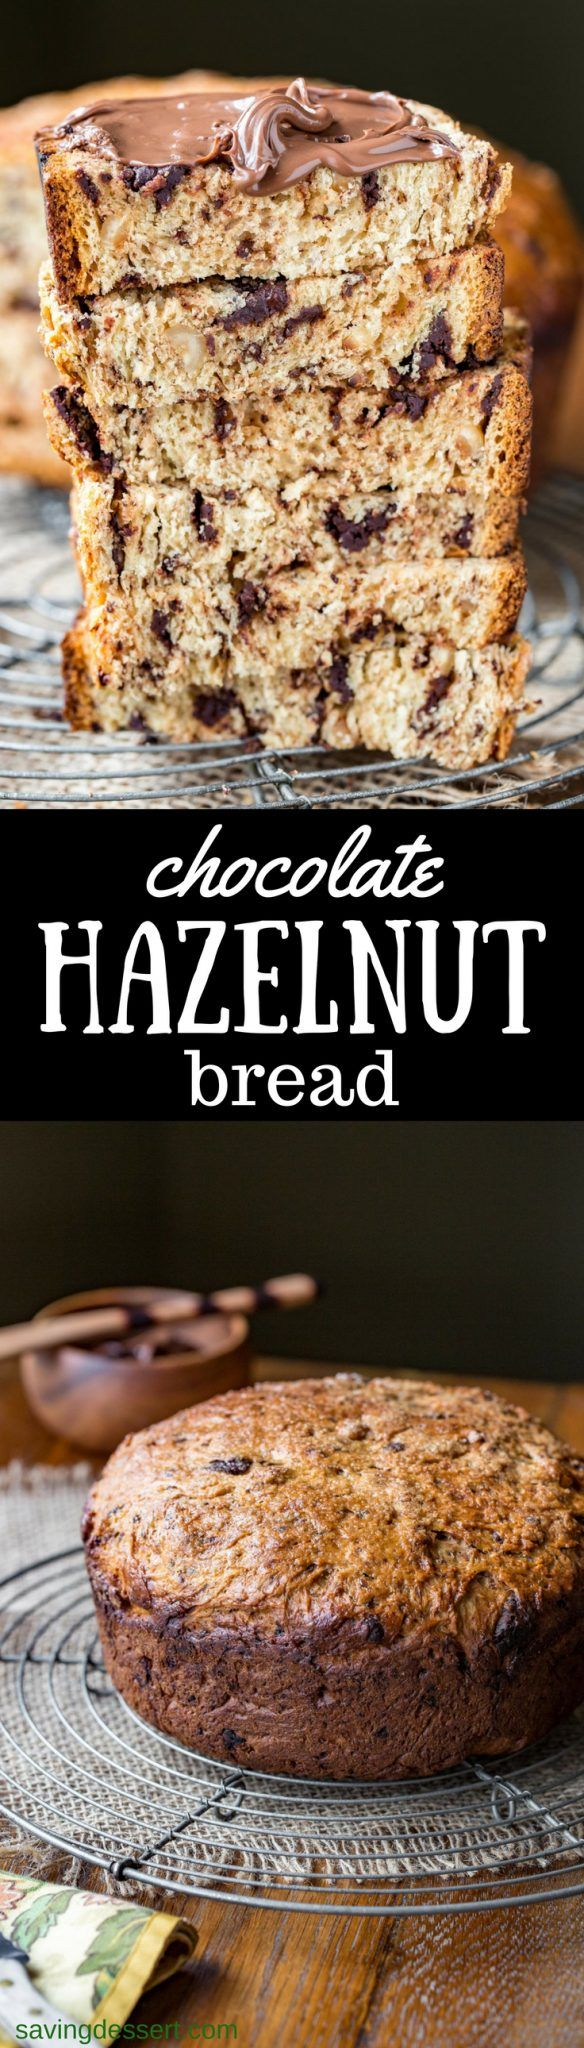 Chocolate Hazelnut Bread ~ a simple yeasted loaf of fluffy sweet bread, loaded with chunks of bittersweet chocolate and toasted hazelnuts. Serve with a slathering of Nutella for a wonderful treat.